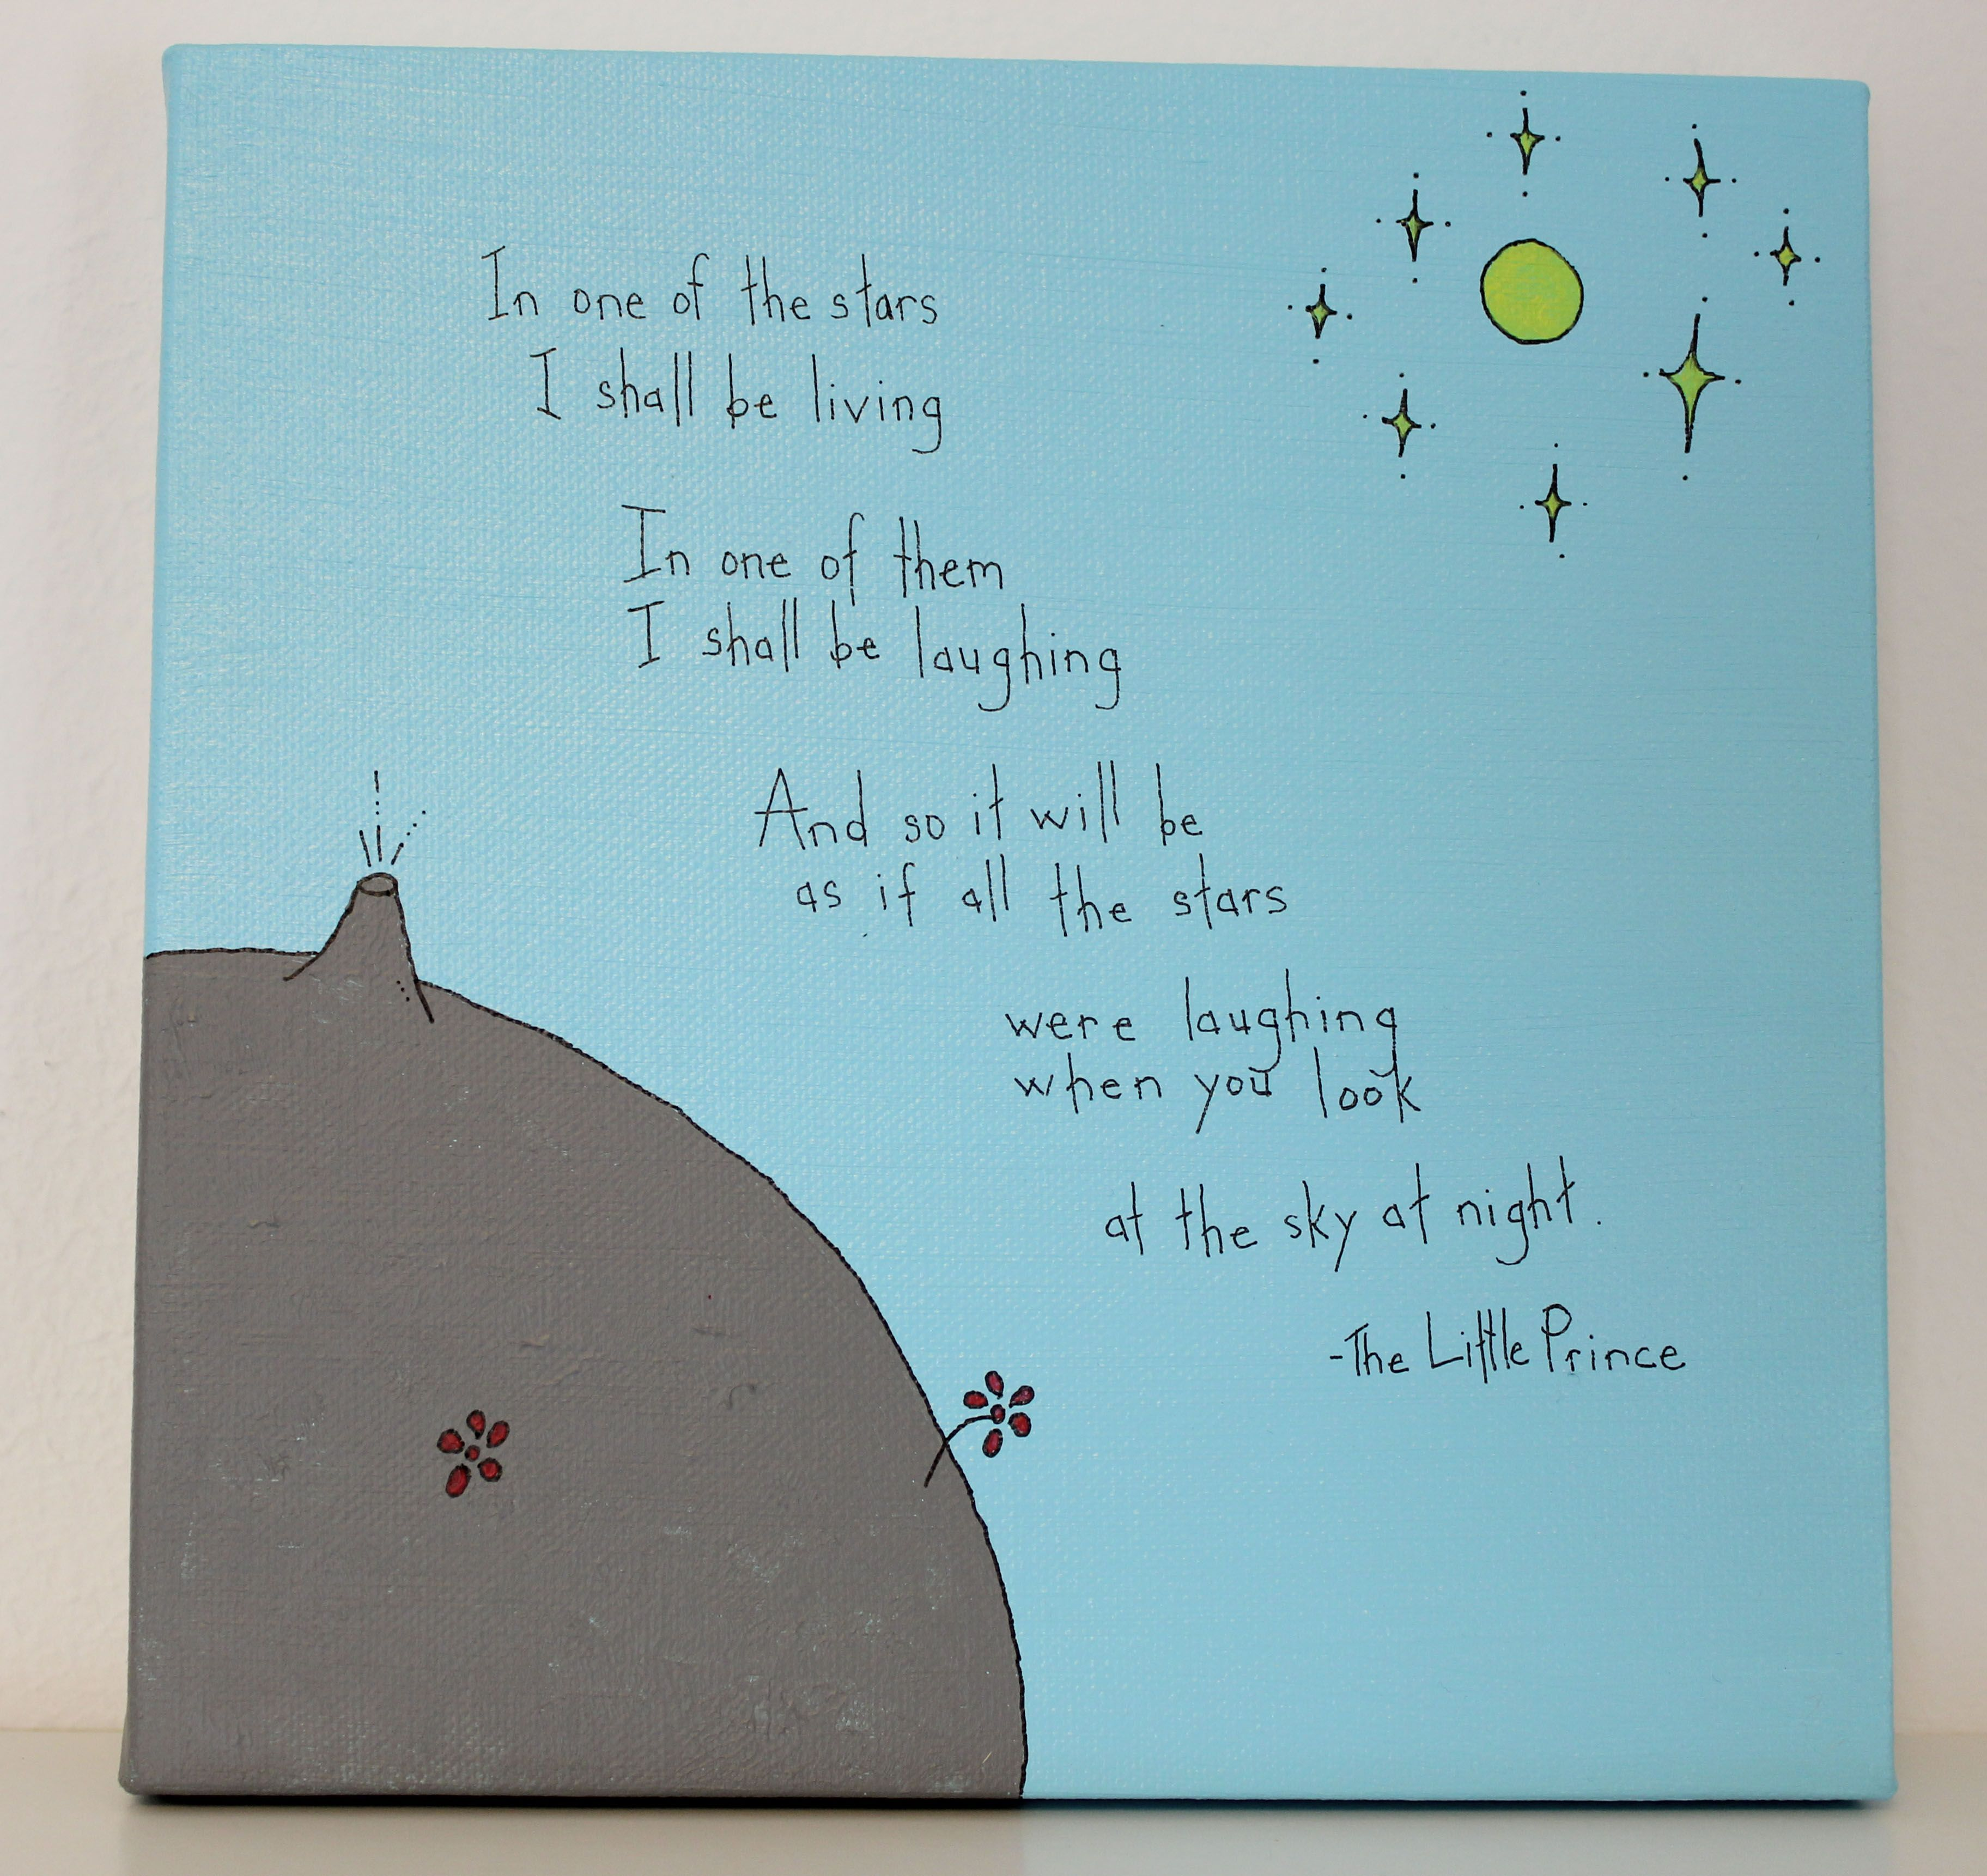 Little Prince Love Quotes Bygecka The Little Prince Quote Painting  Bygecka Life And Love